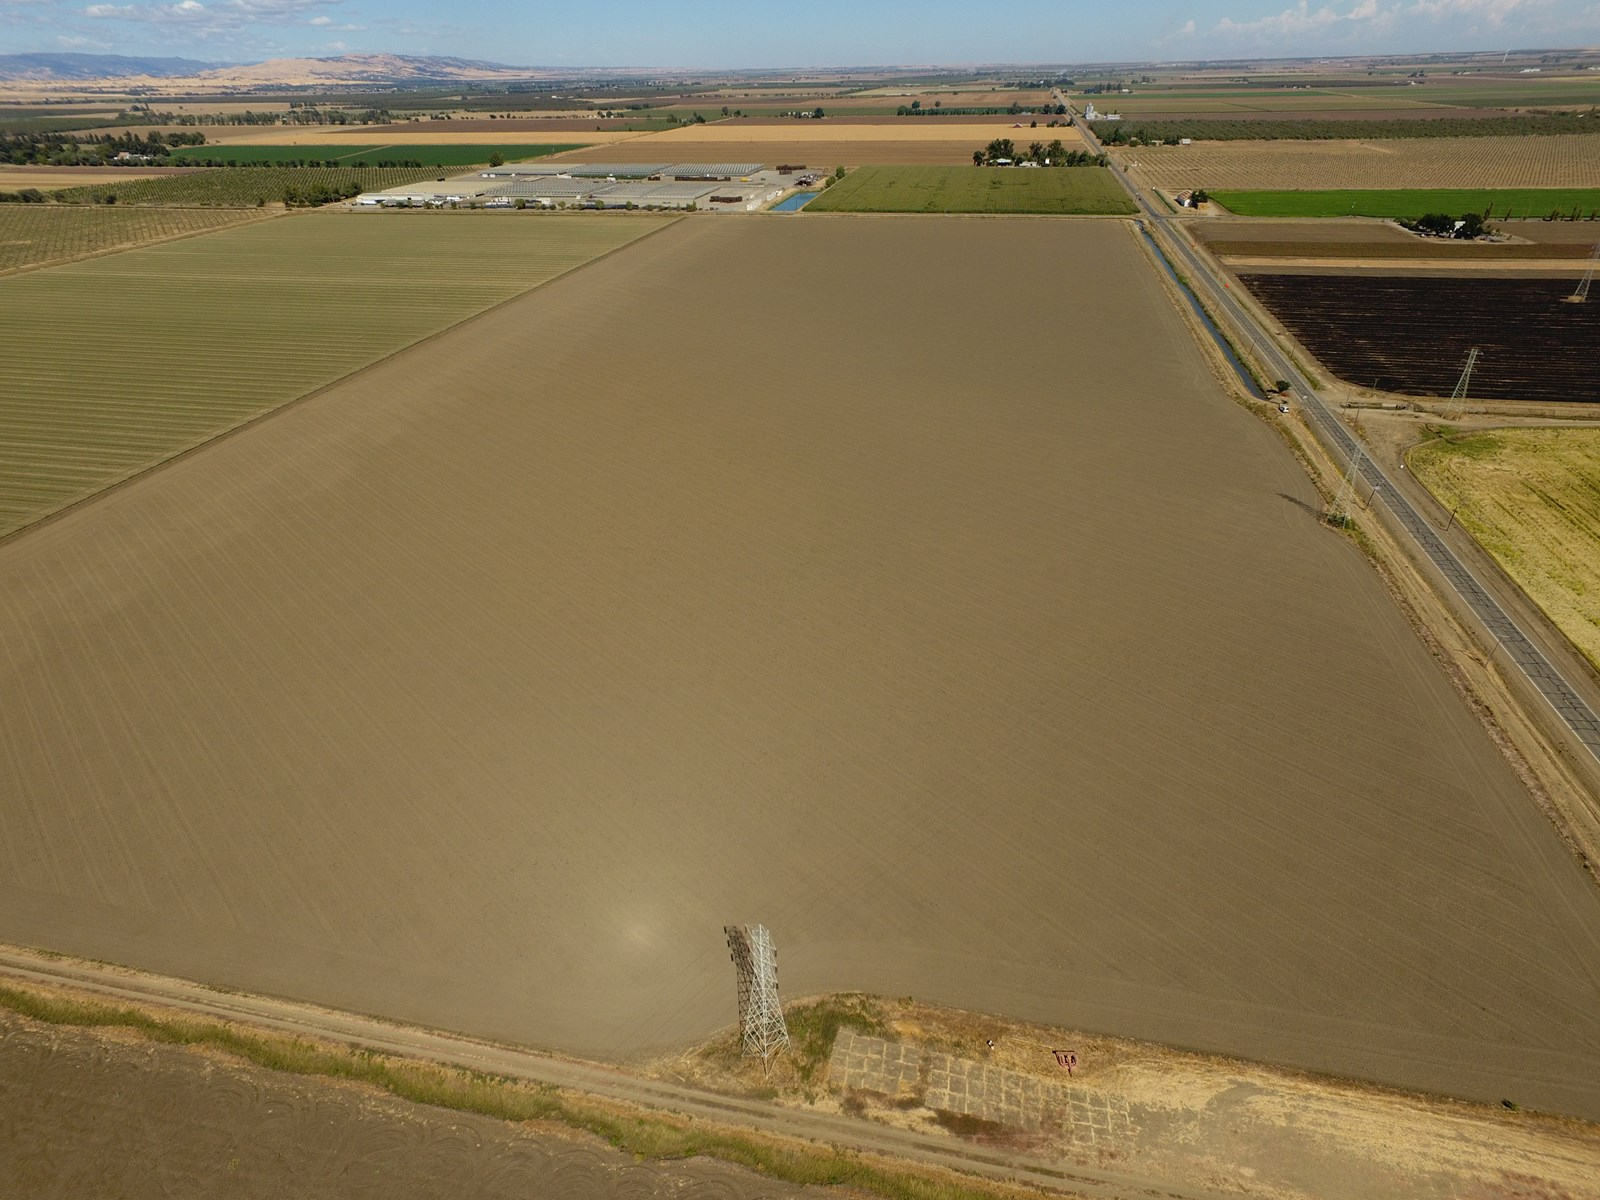 Yolo County Farm Land For Sale - Currently In Alfalfa